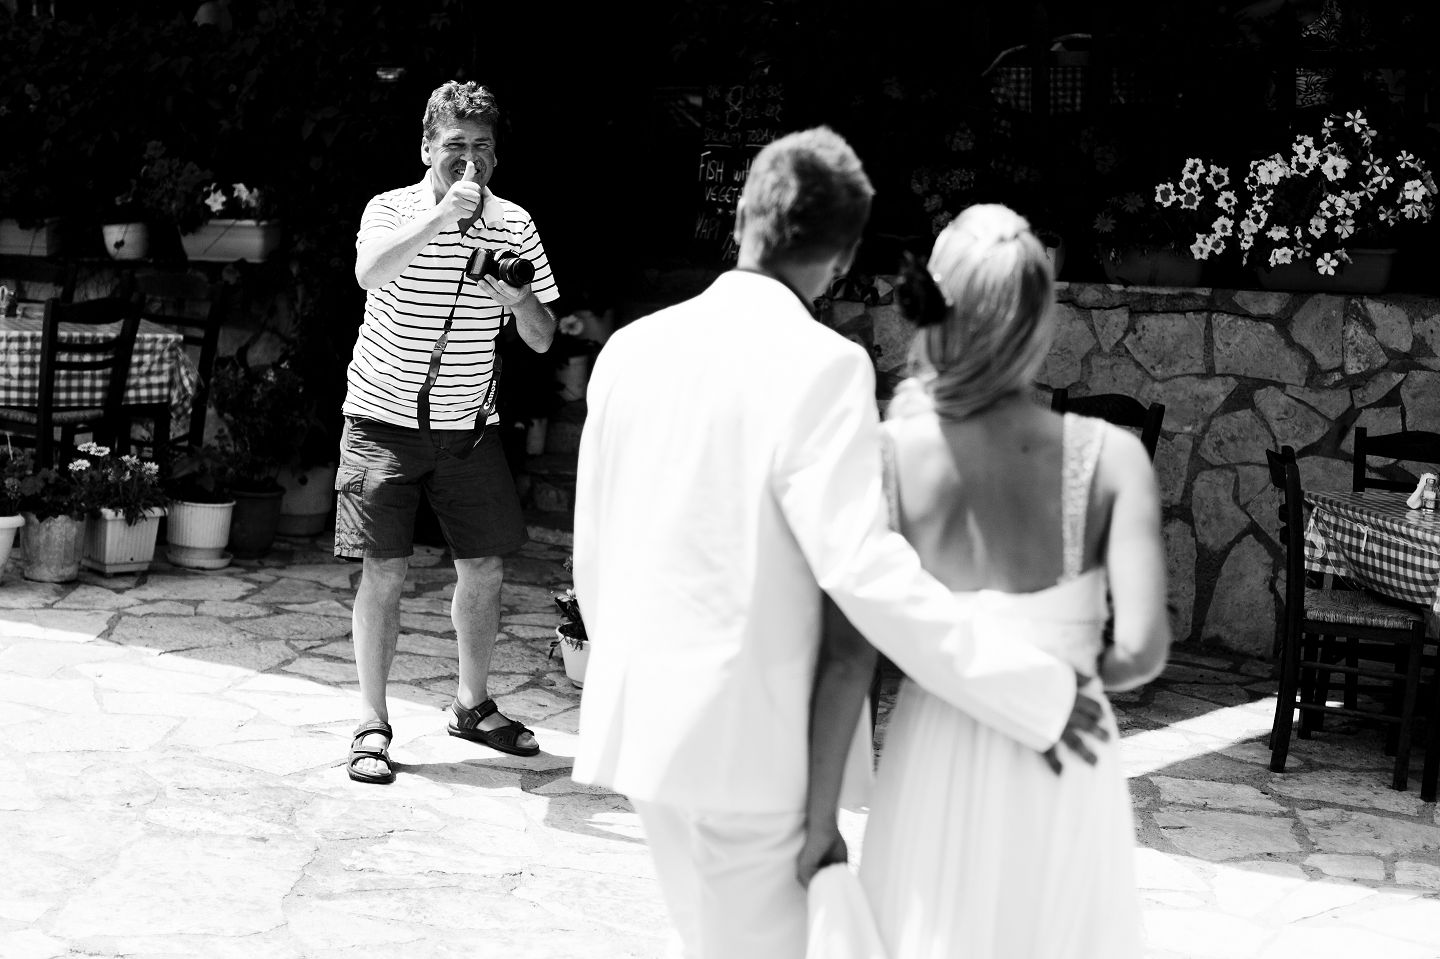 greece-lefkada-wedding-natalija-vasja-48